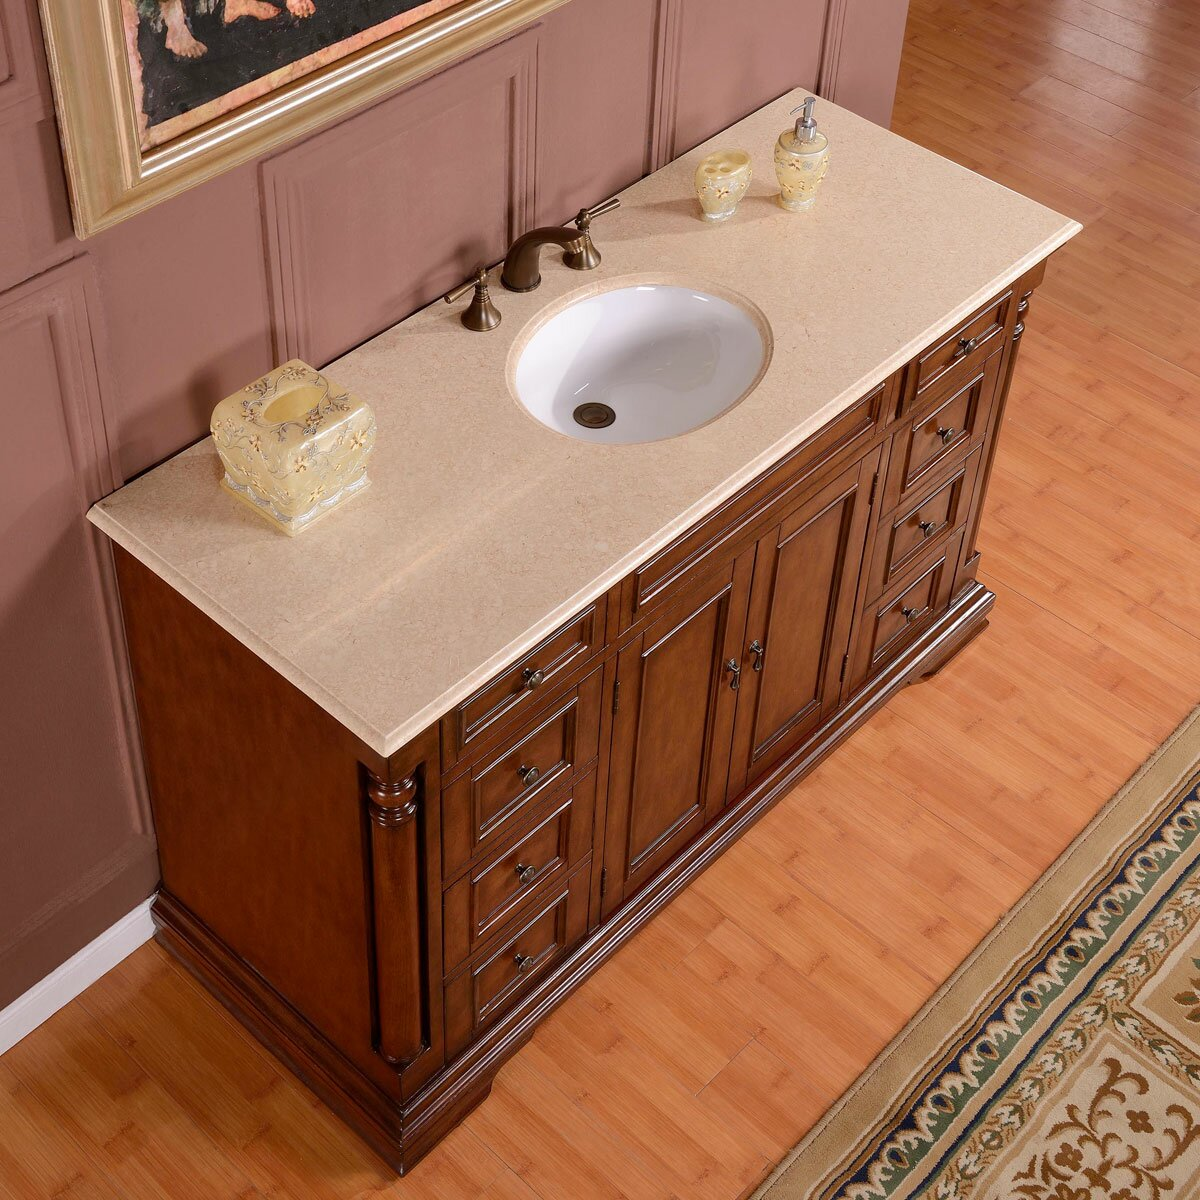 Silkroad exclusive 58 single sink cabinet bathroom vanity set reviews wayfair Bathroom sink and vanity sets